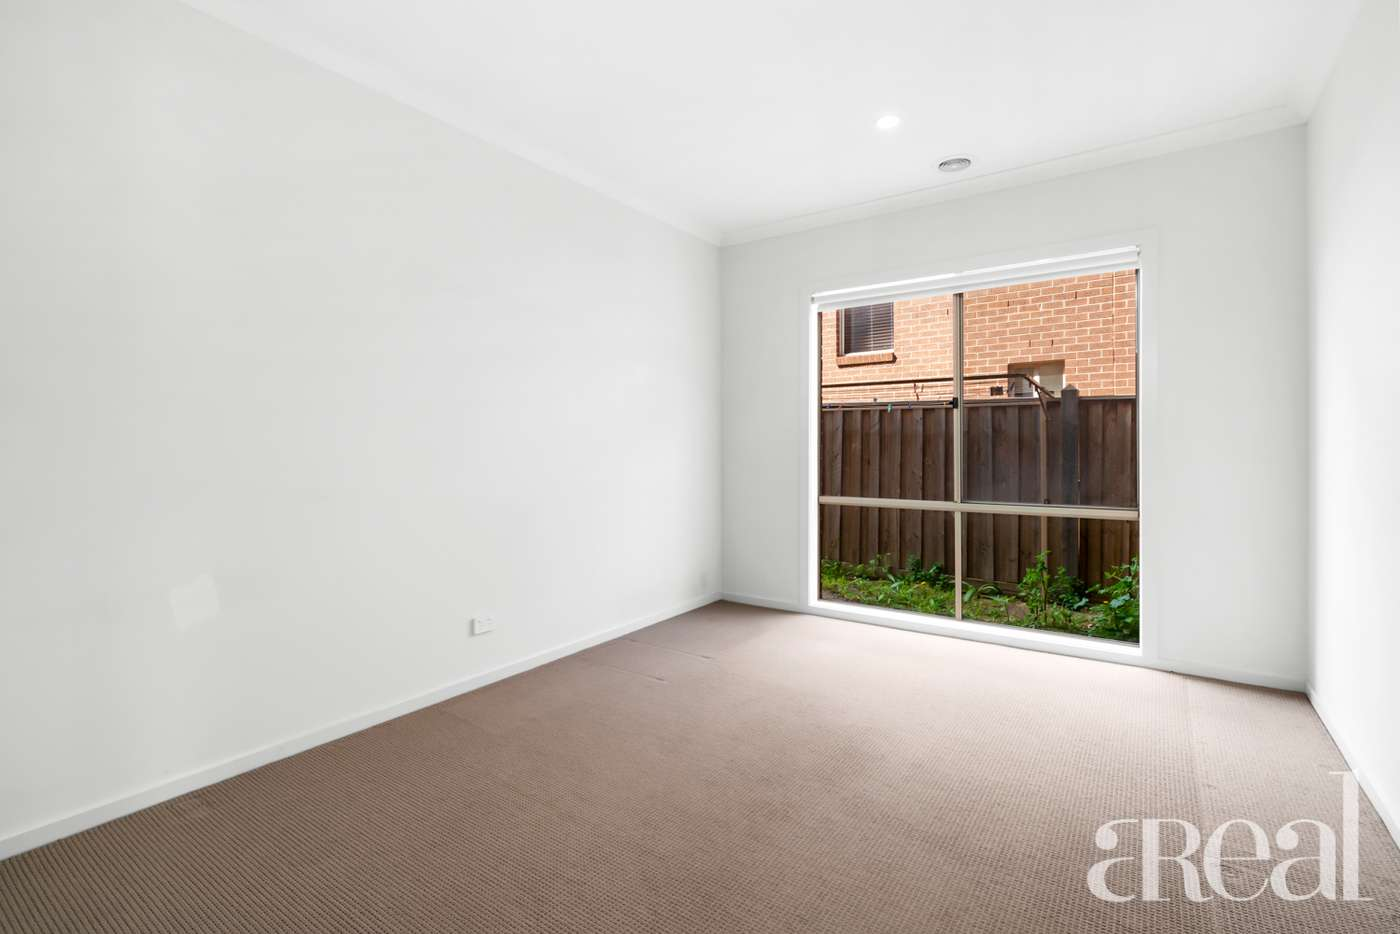 Seventh view of Homely house listing, 329 Saltwater Promenade, Point Cook VIC 3030